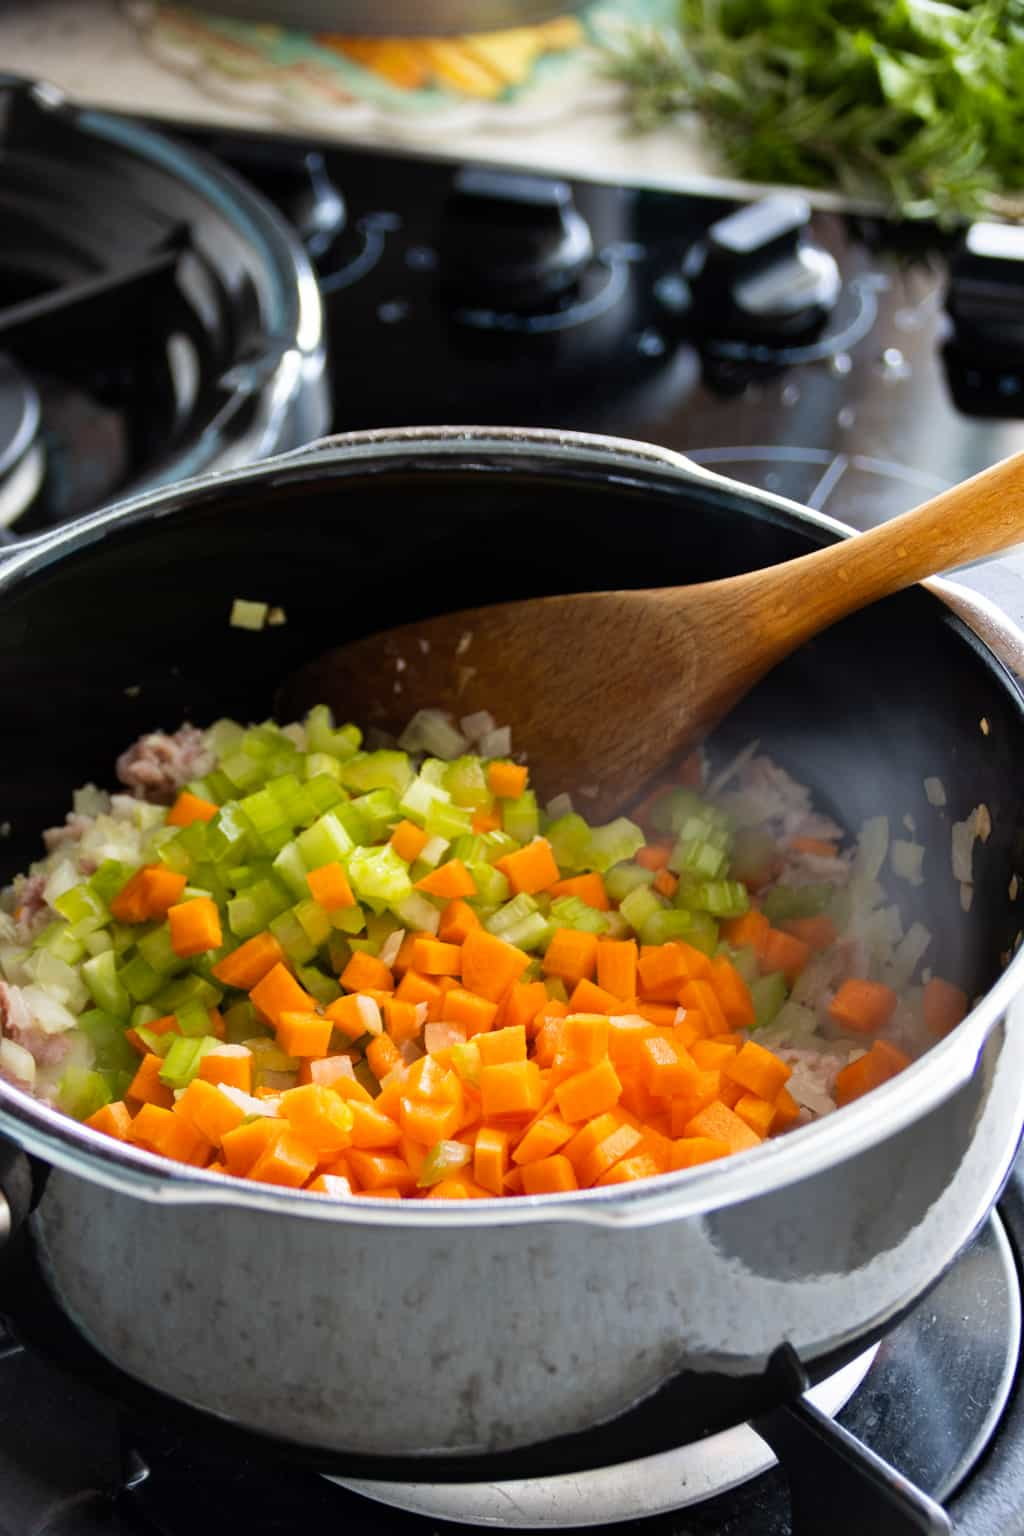 Cooking soffritto for bolognese sauce